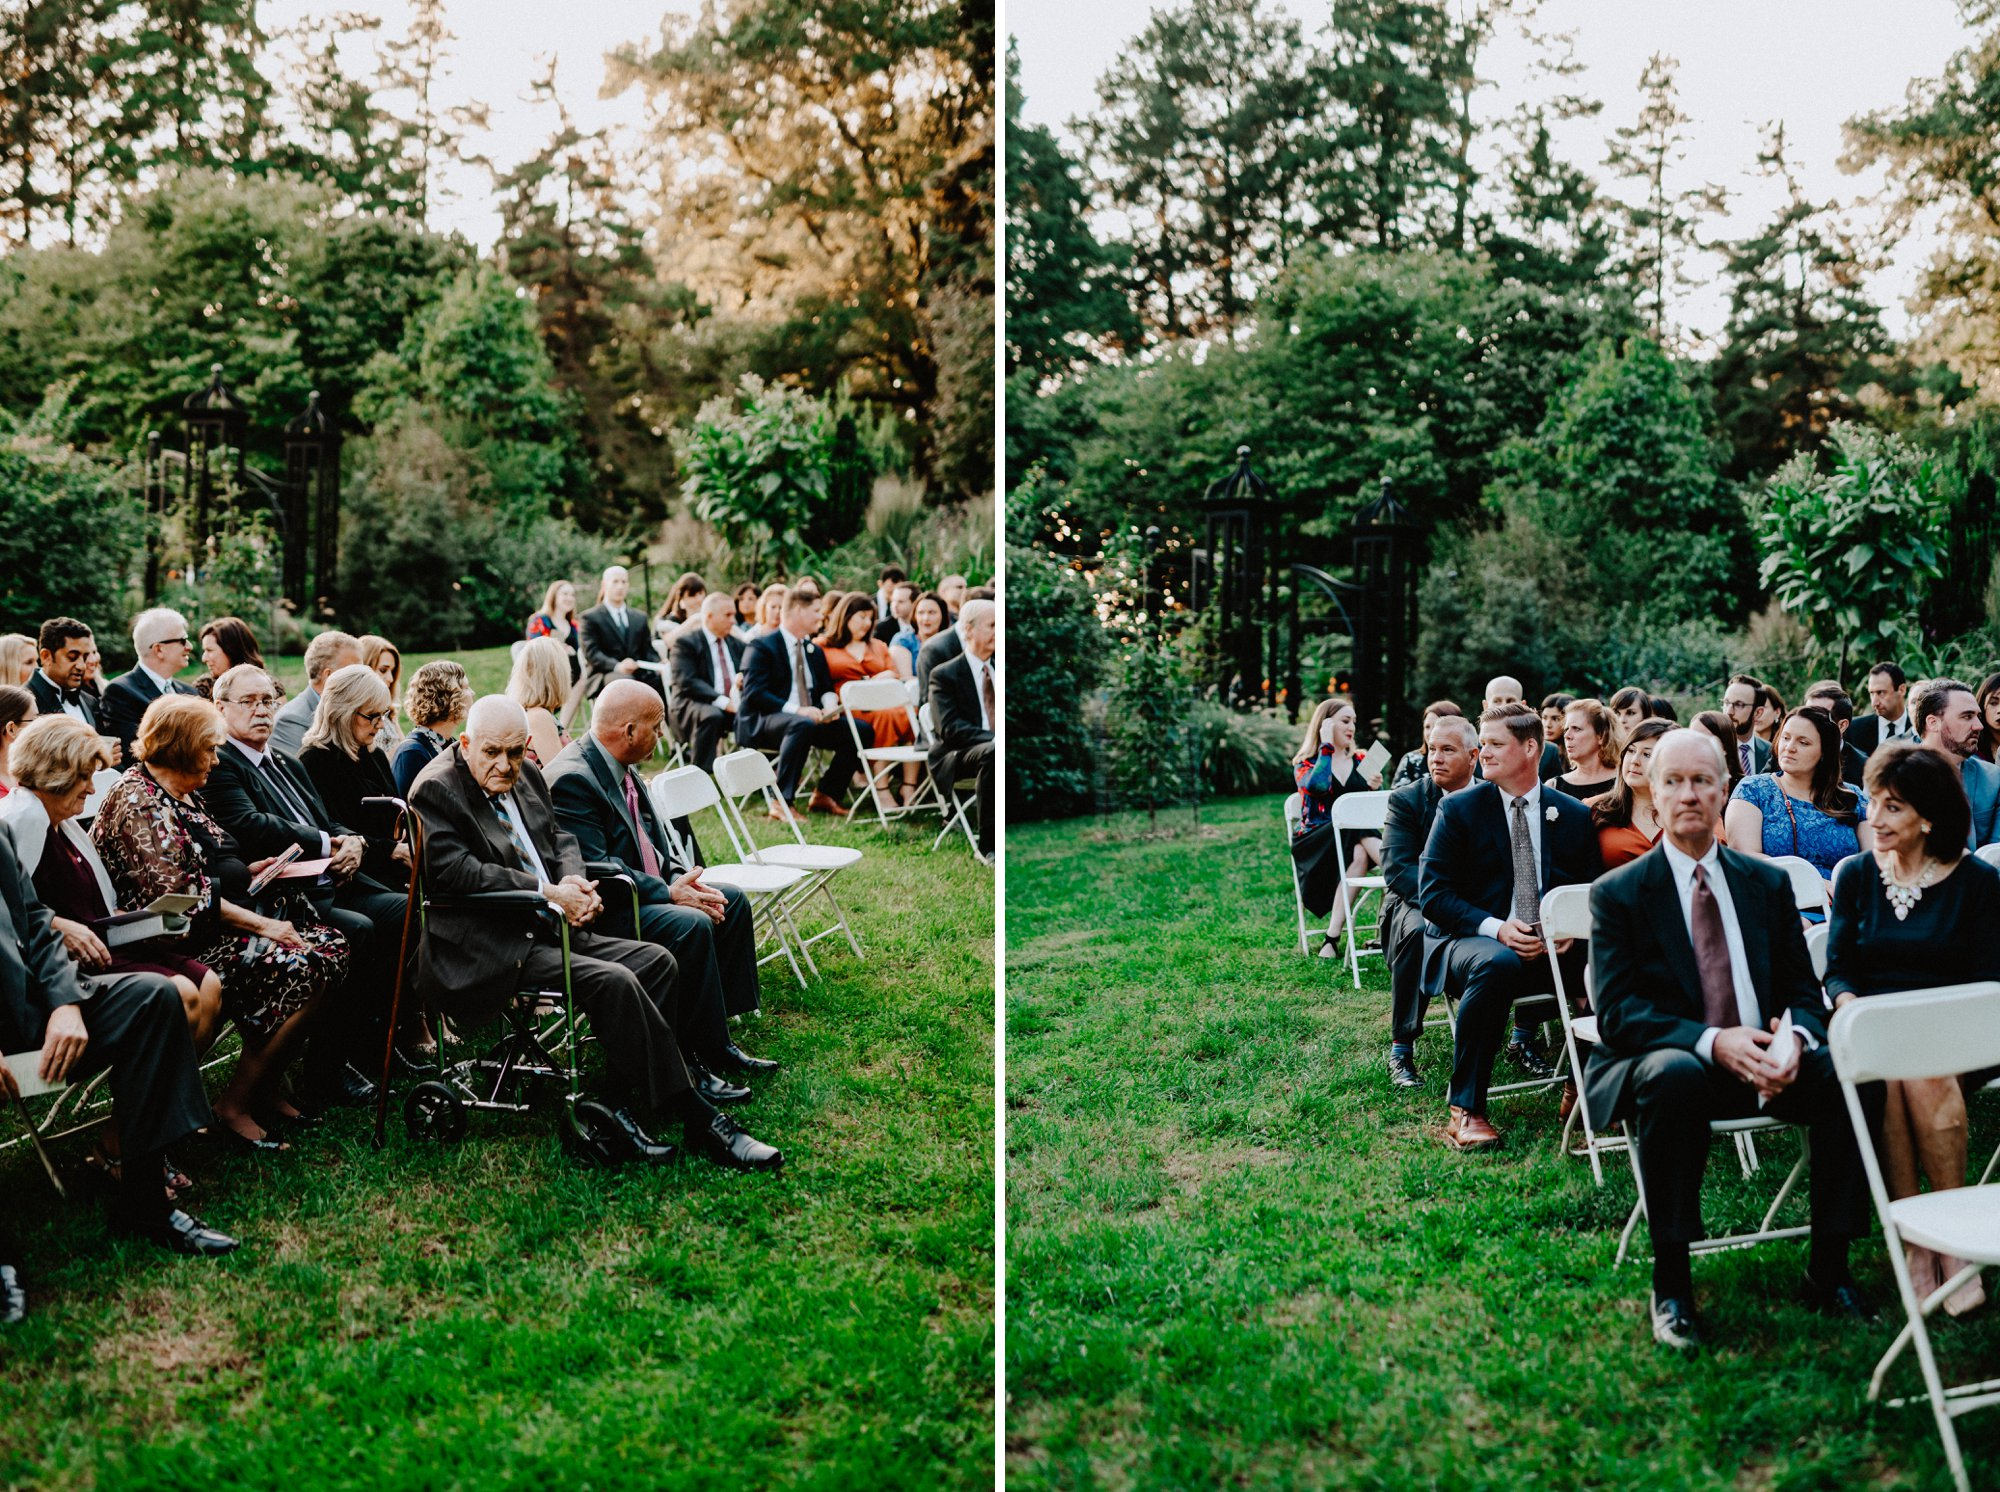 Viva Love Wedding Photography Morris Arboretum Outdoor Ceremony Bright Florals Neon Bridal Jacket